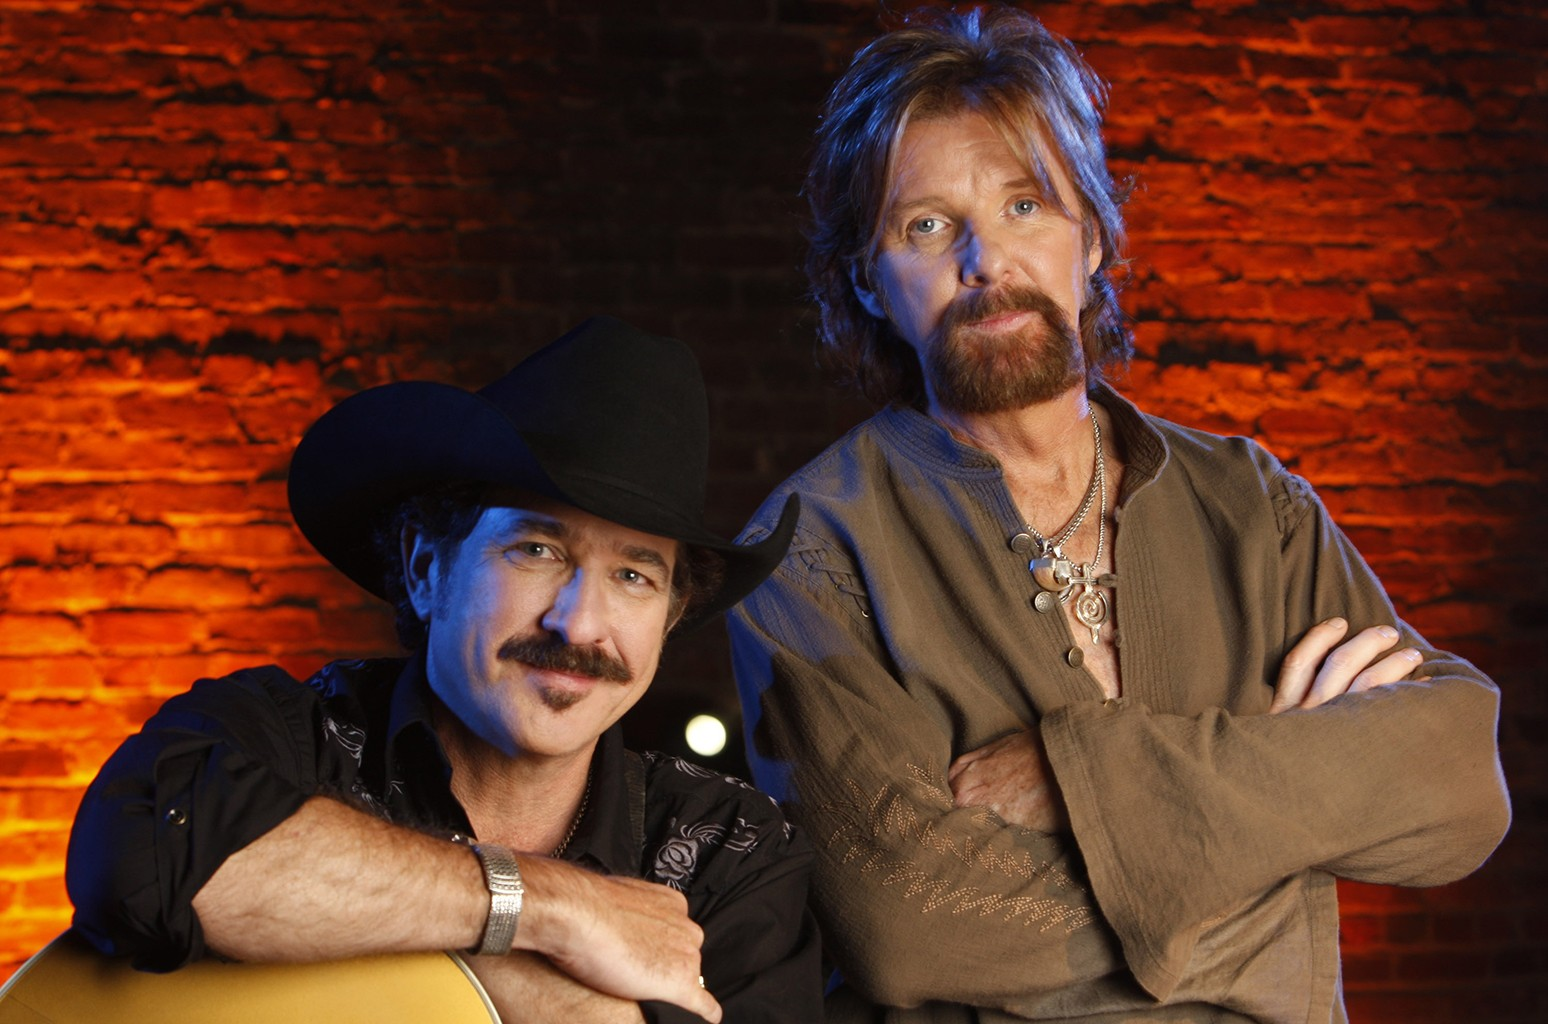 Kix Brooks and Ronnie Dunn